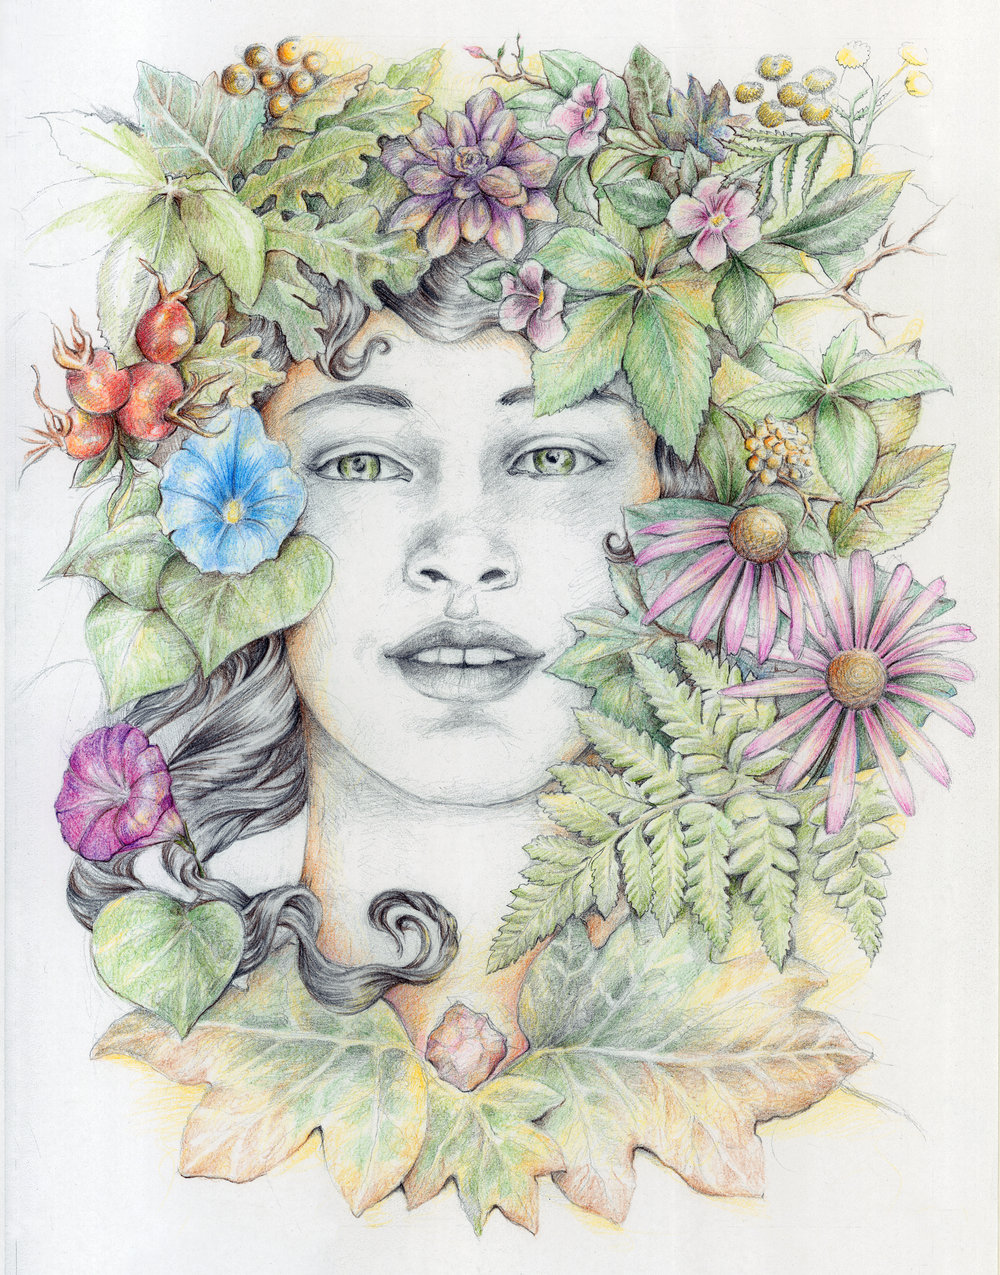 Full pagearticle illustration for Chronogram Magazine. September, 2017. Graphite and color pencils.